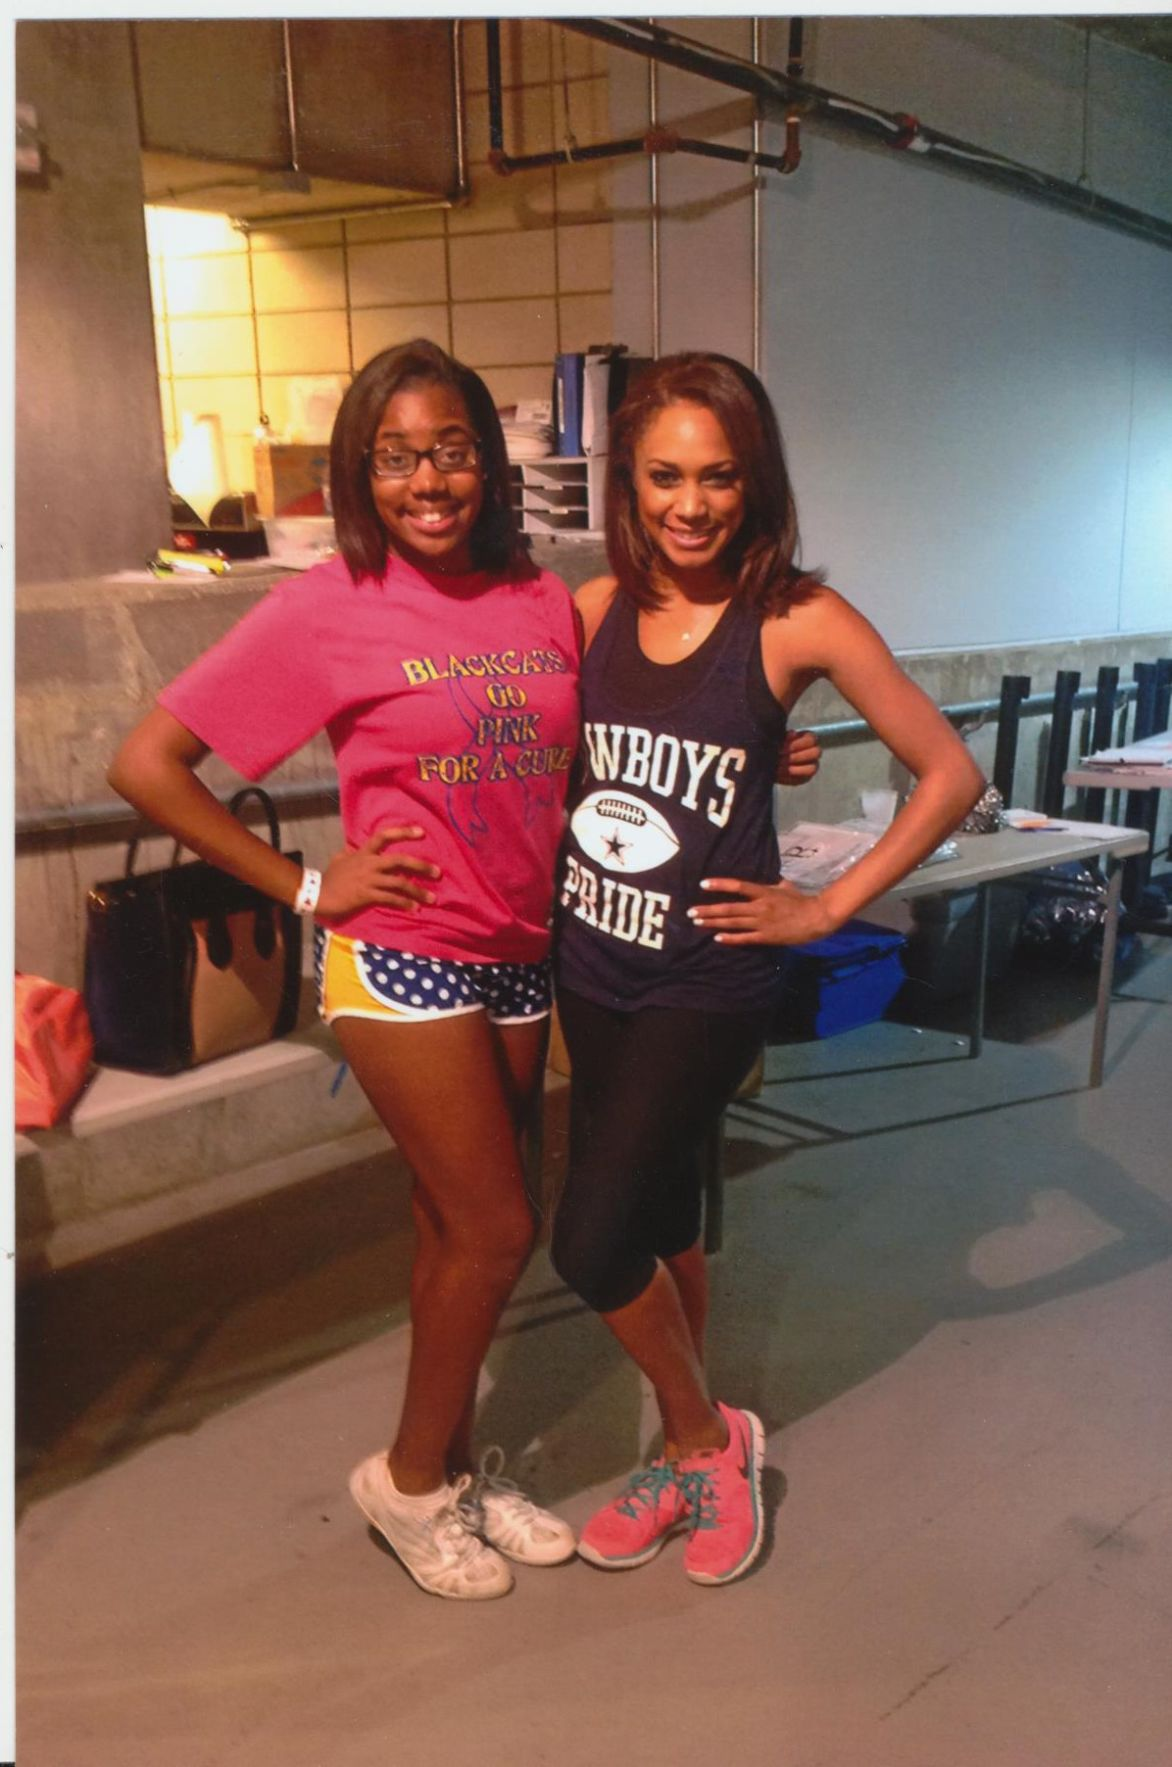 Daughter welcomes comparisons to mother who was Dallas Cowboys cheerleader